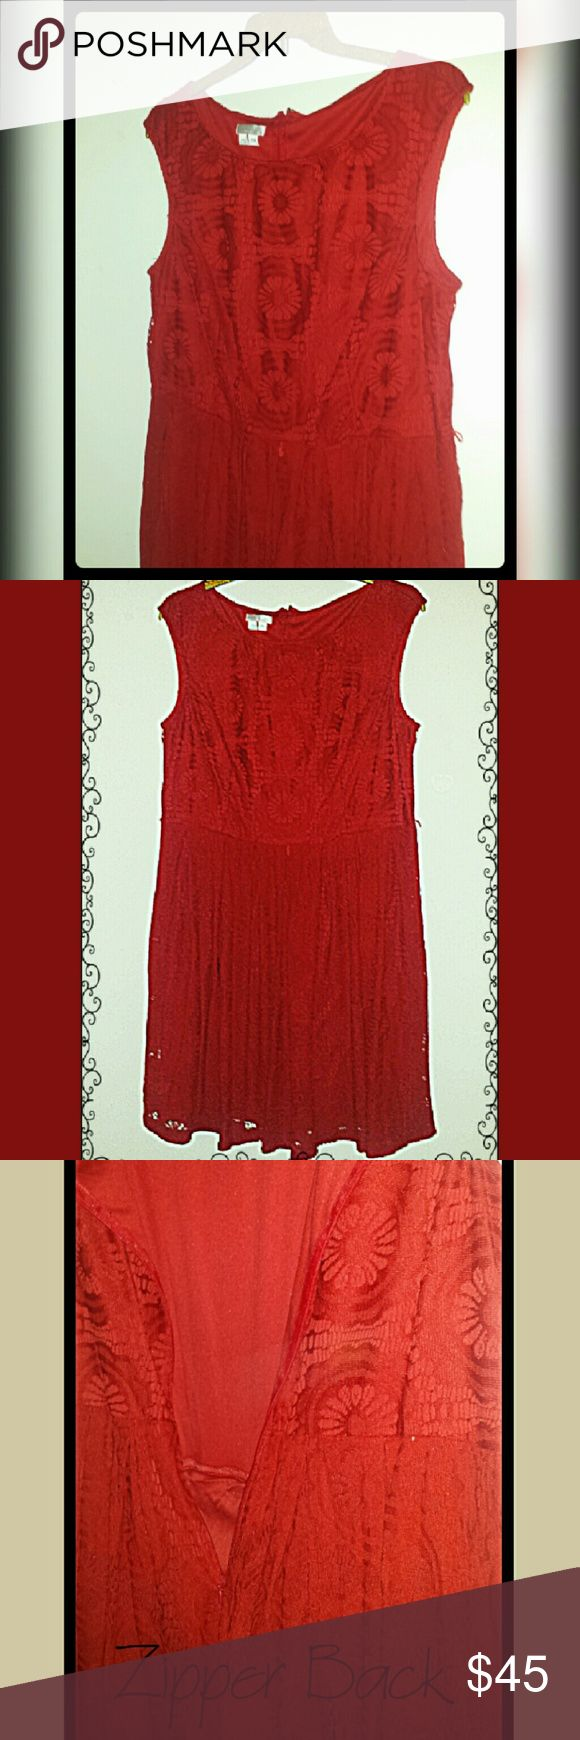 Red Dress Rich Red Dress with lace doily design. 100% Polyester with 100% Polyester Lining. Thick Straps. Sleeveless.  Wear alone or pair with a nice cardigan. Hits right above or at the knee. Small hoops to attach small belt if needed. Excellent condition. Wore 1x. Great for casual, evening, Christmas,  Valentine's Day, weddings, etc Size 18W London Times Dresses Midi